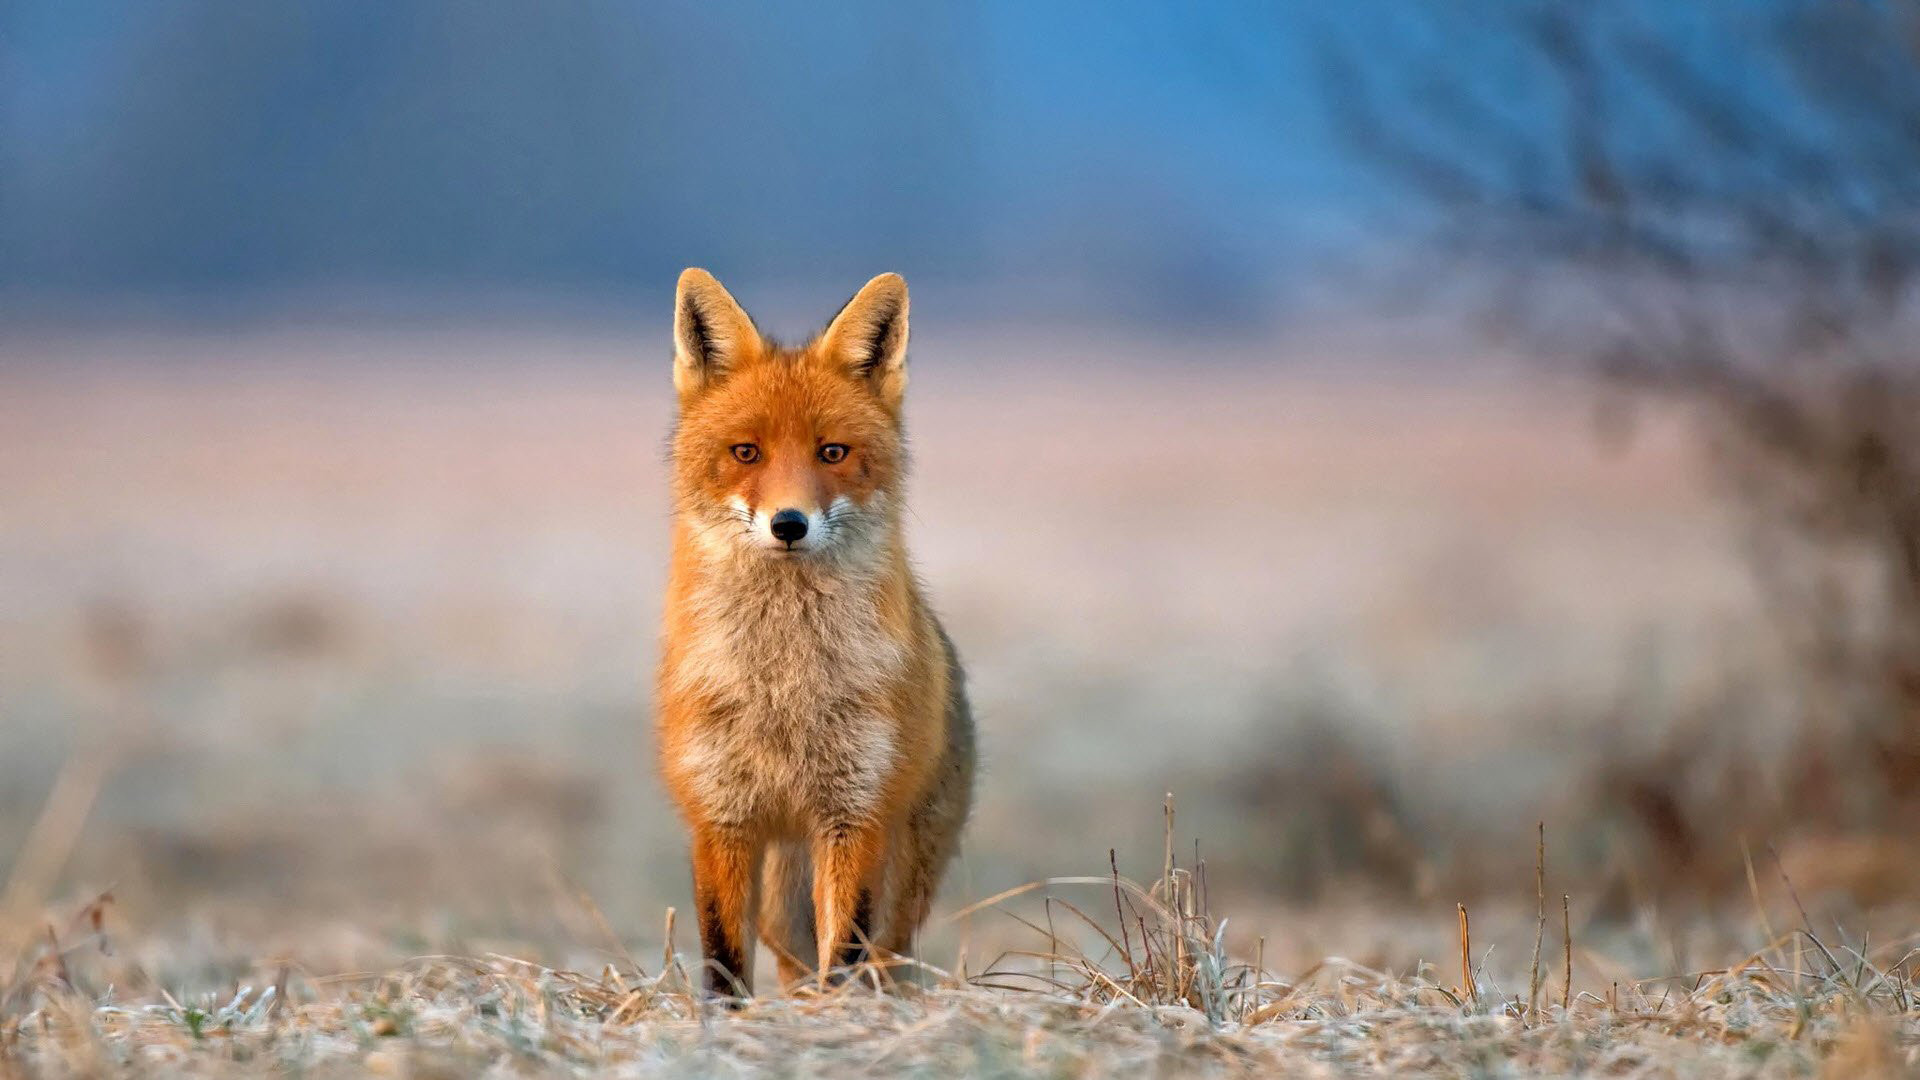 Red Fox Wallpapers Phone with HD Wallpaper Resolution px 486.98  KB Animals White Iphone Racing